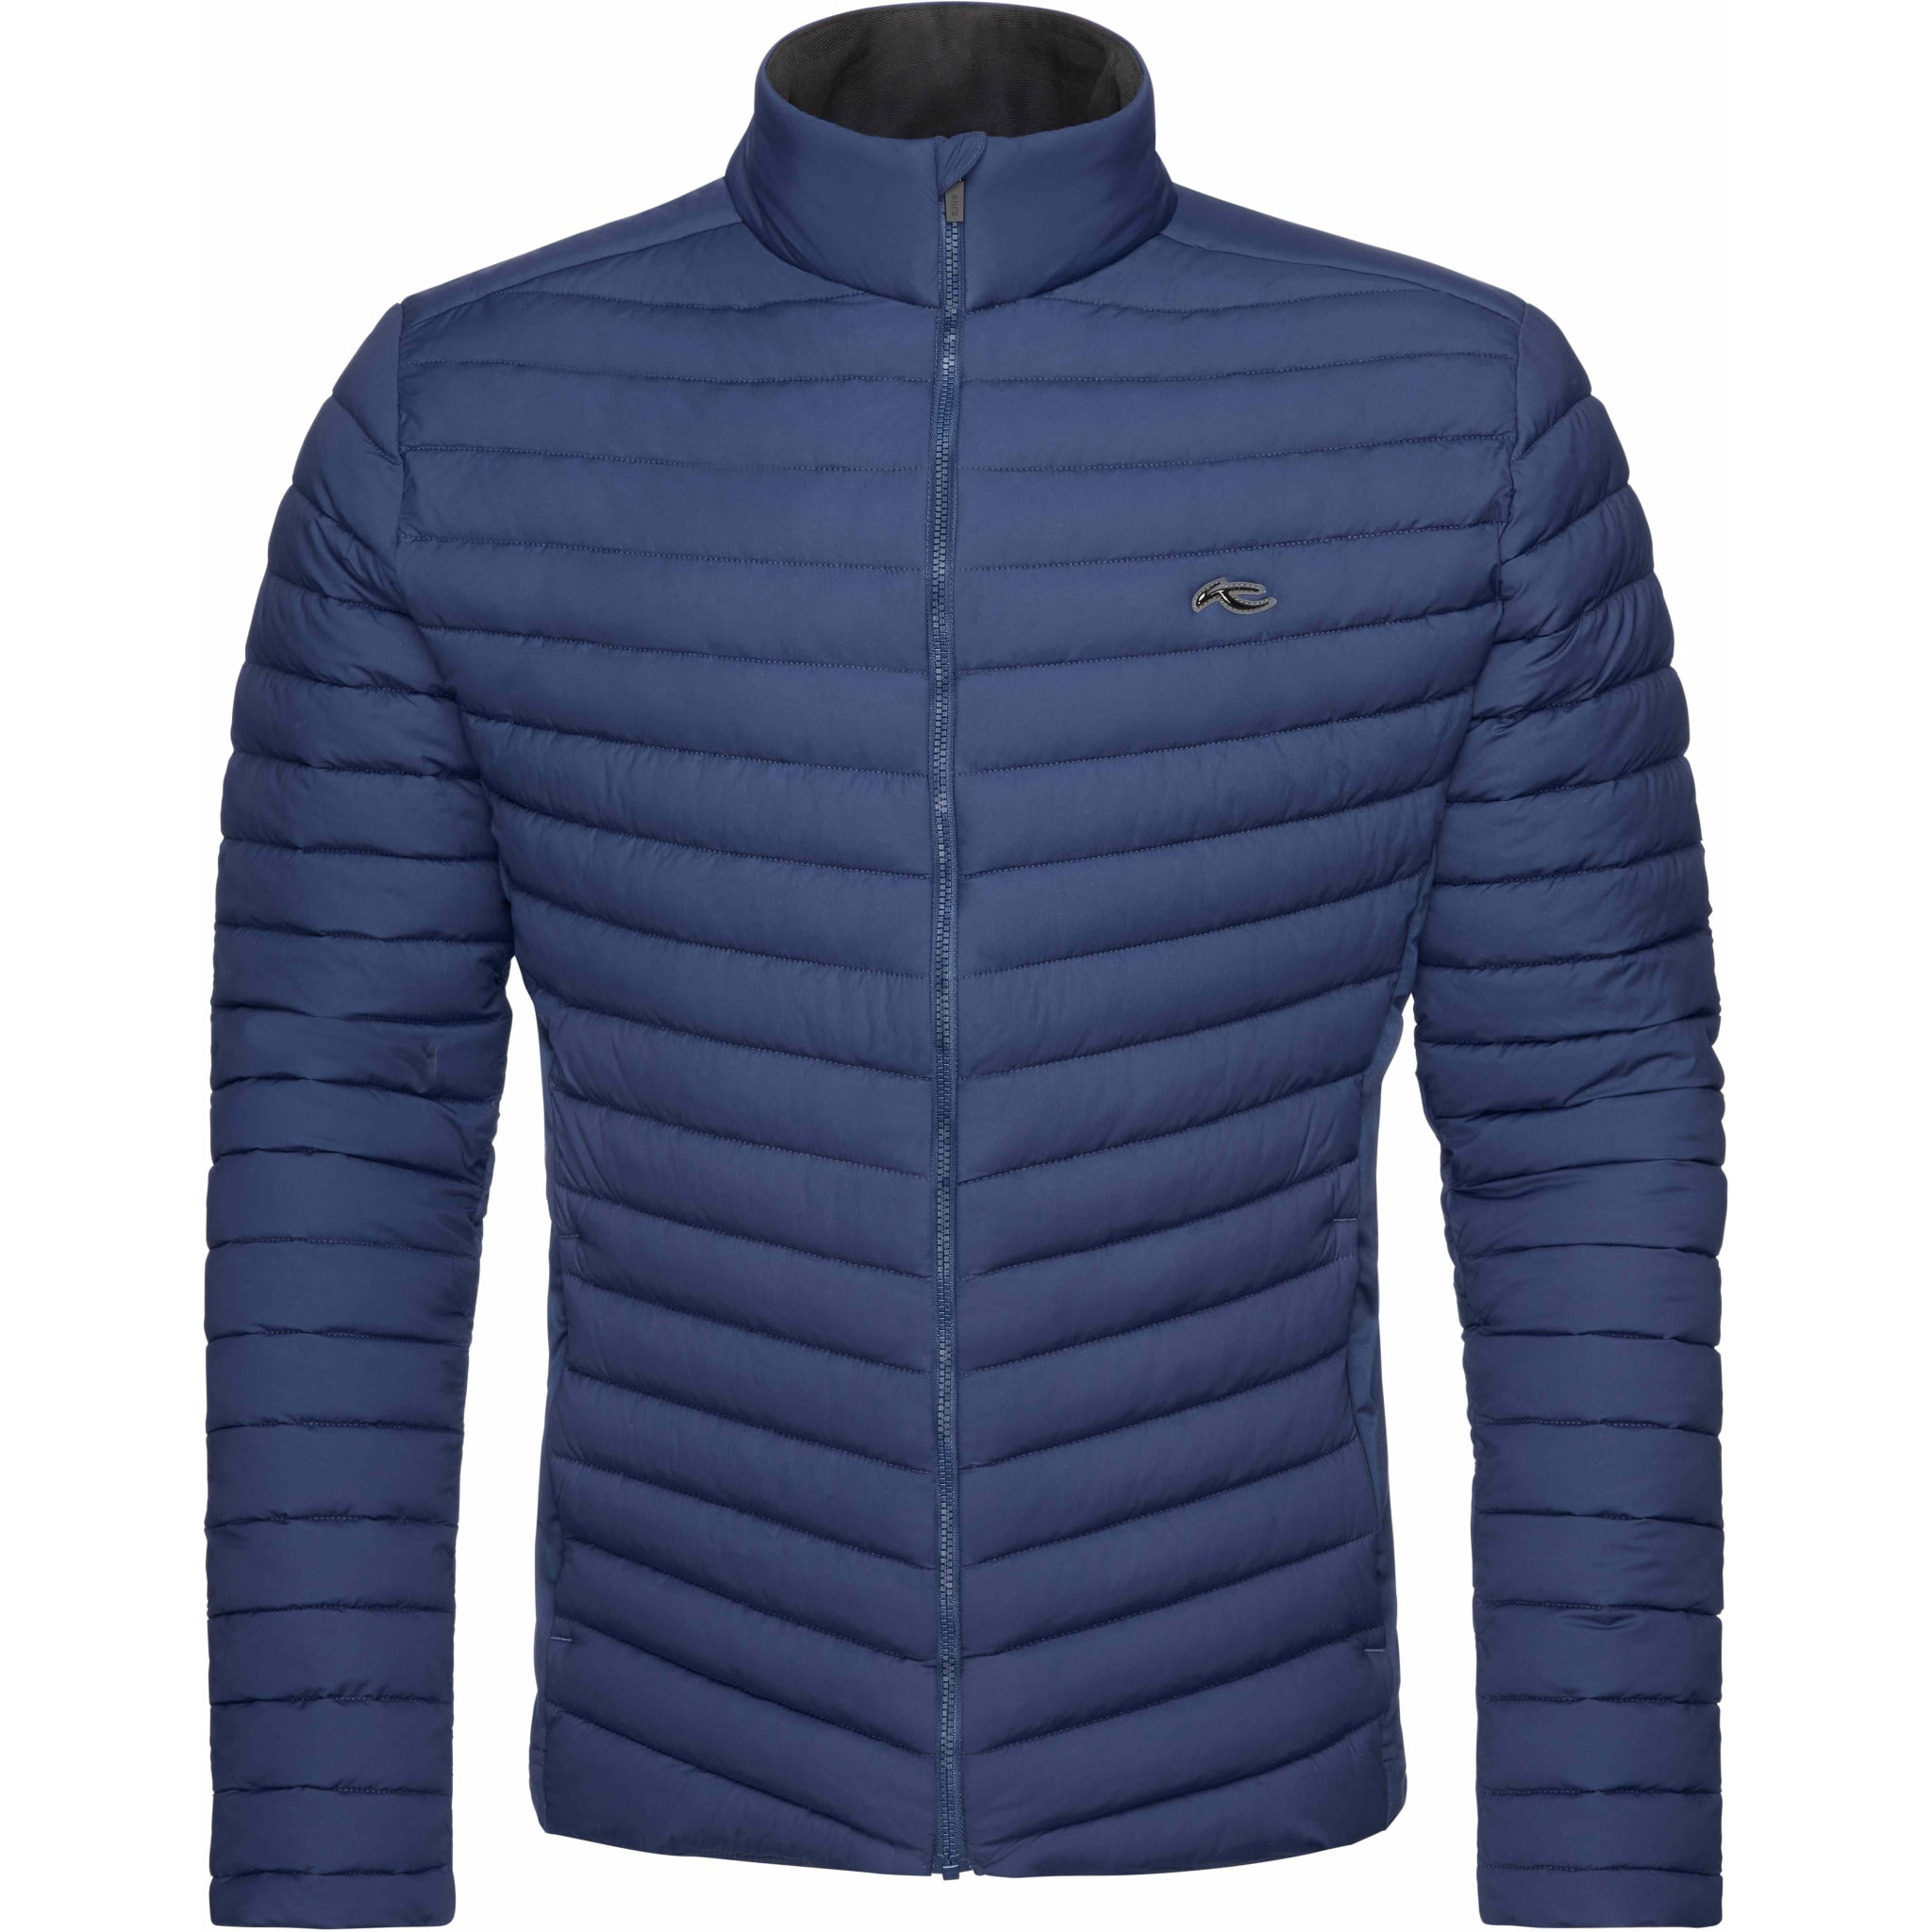 Macun Insulator Jacket M